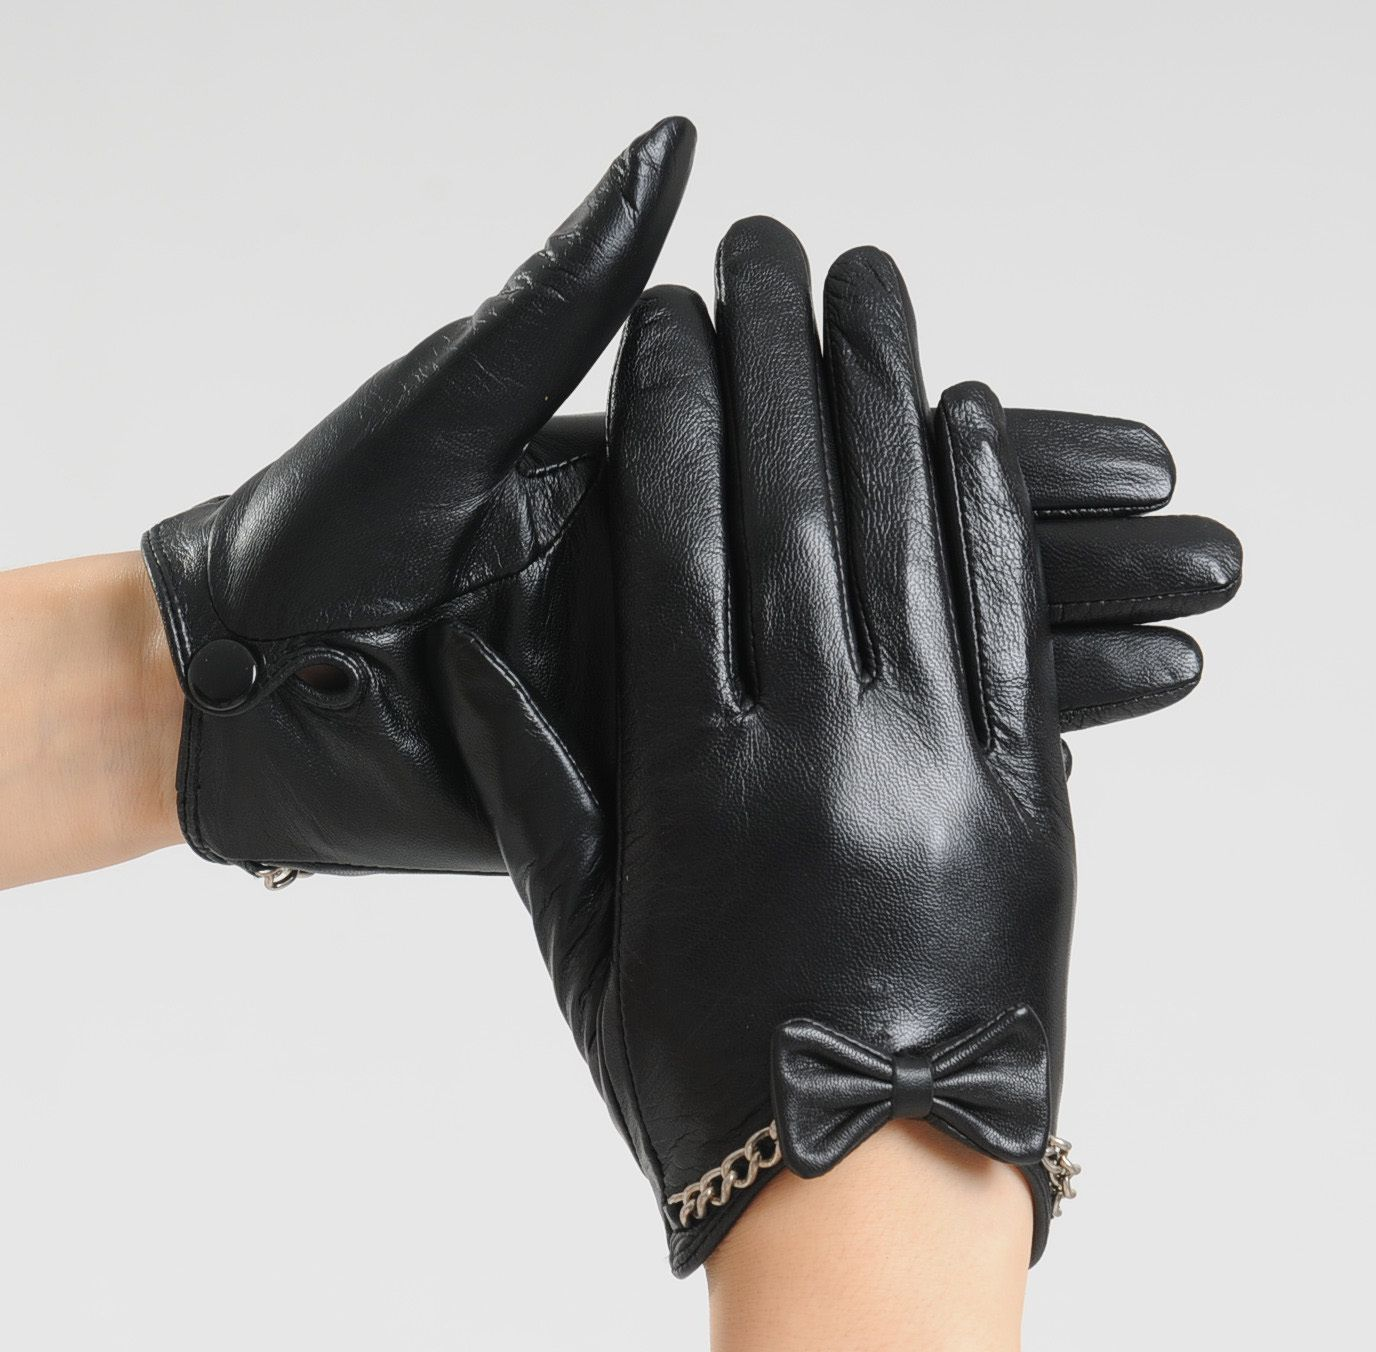 Ladies leather gloves large - Leather Gloves Women Yahoo Image Search Results